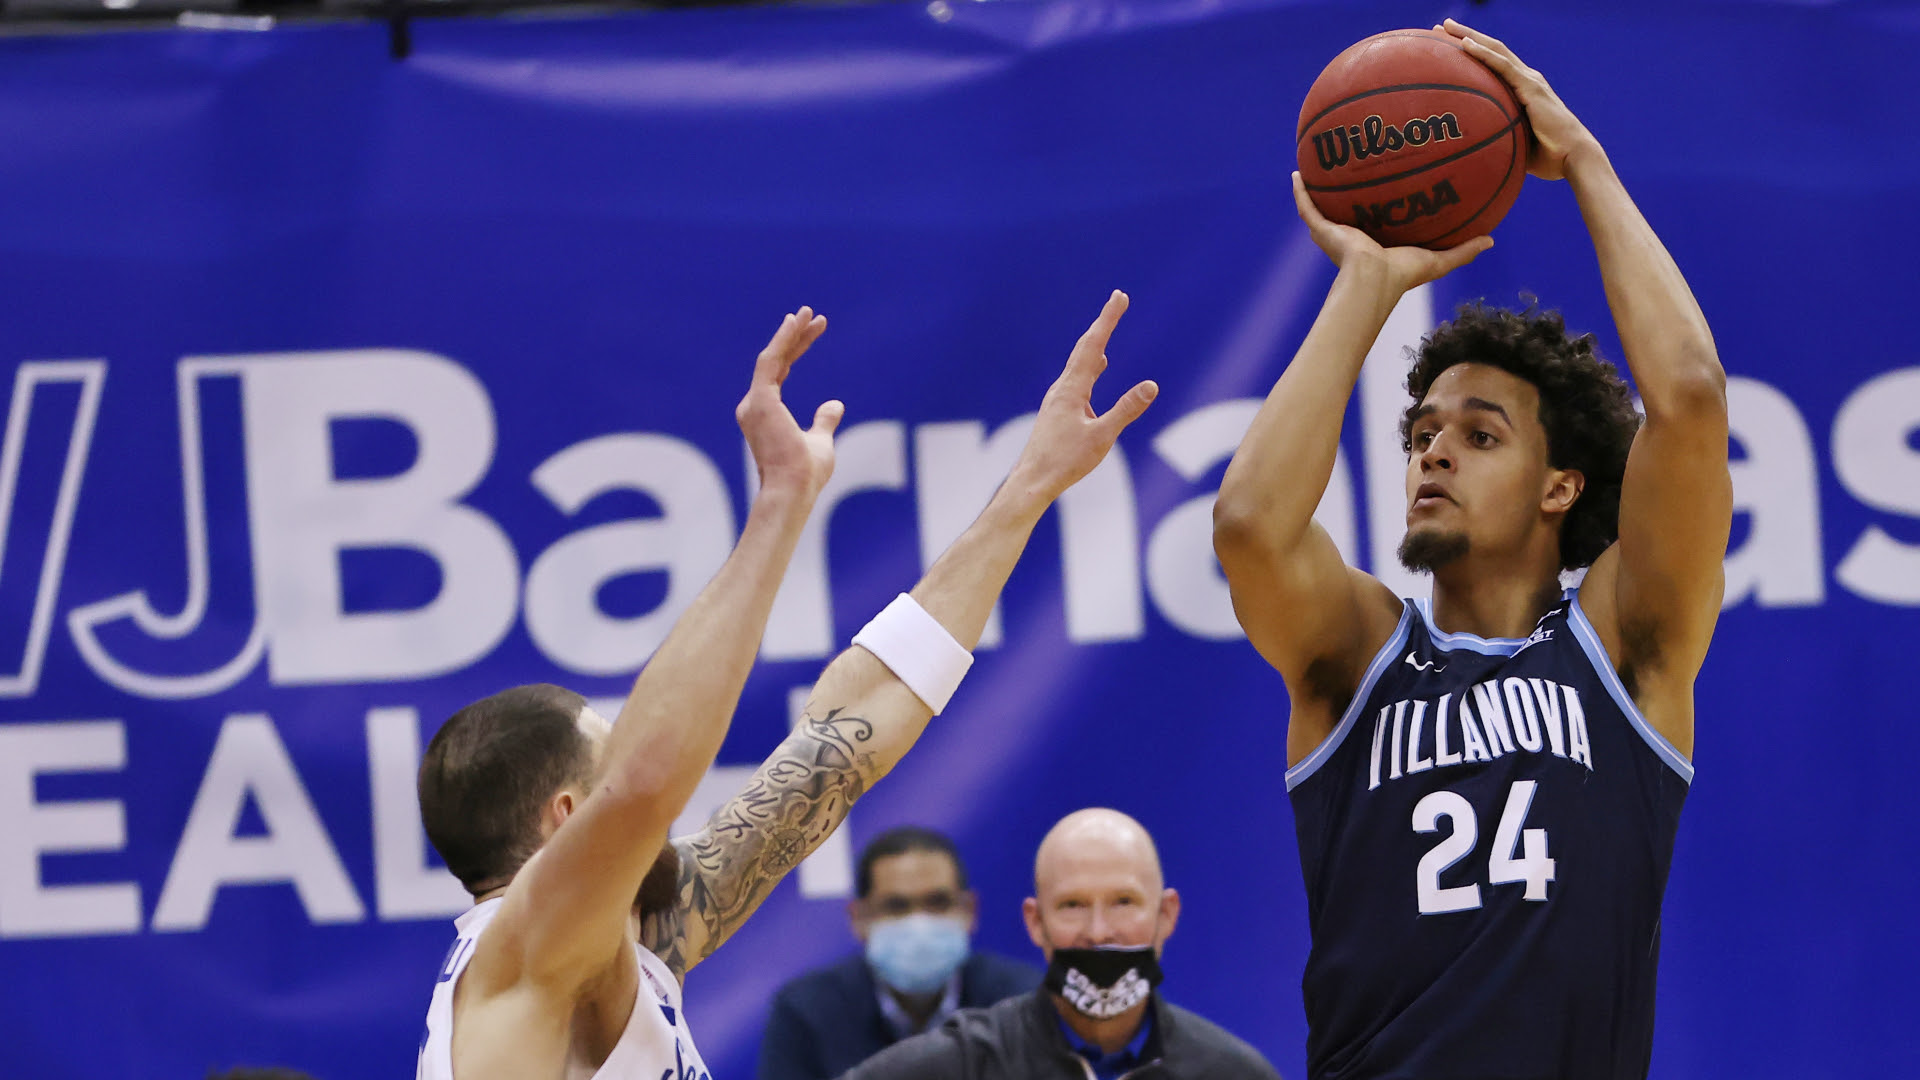 Big East Tournament bracket: Full TV schedule, scores, results for 2021 basketball tournament